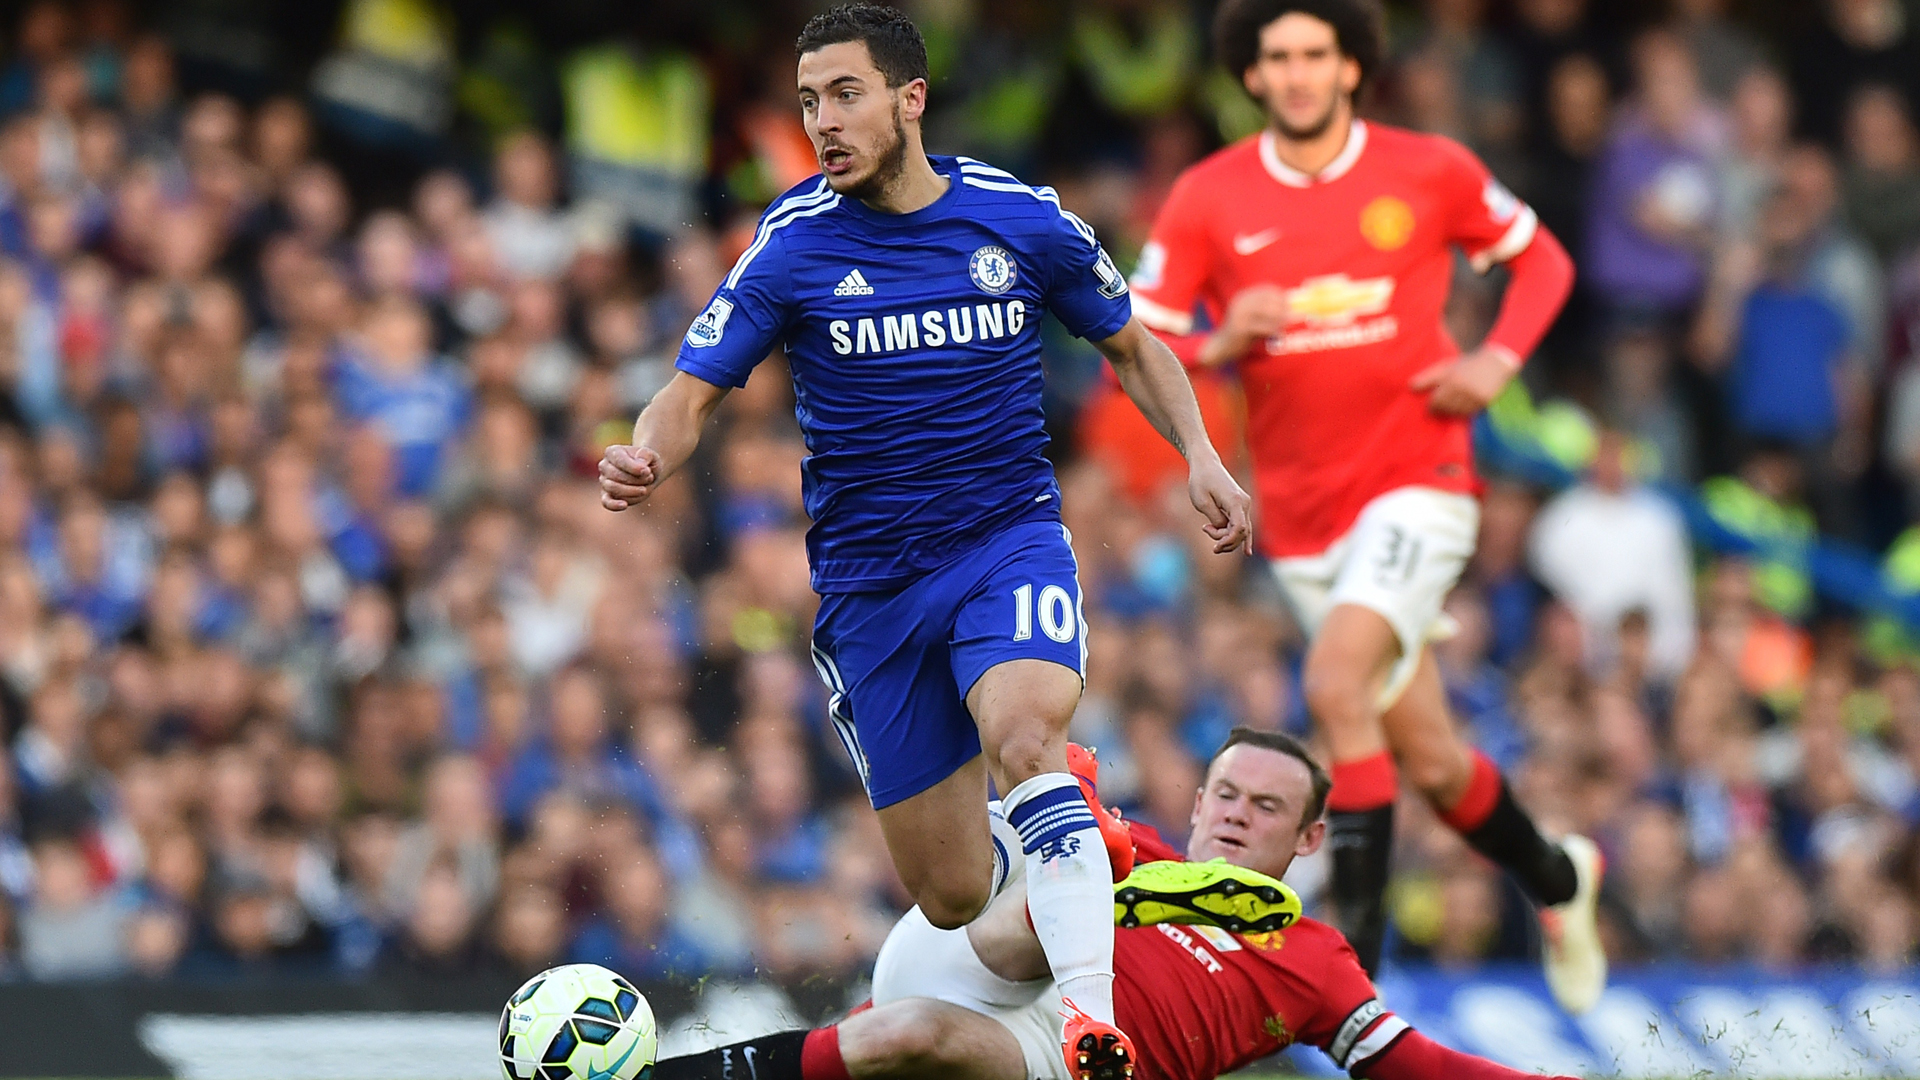 Hazard is up there with Ronaldo and Messi, claims Mourinho